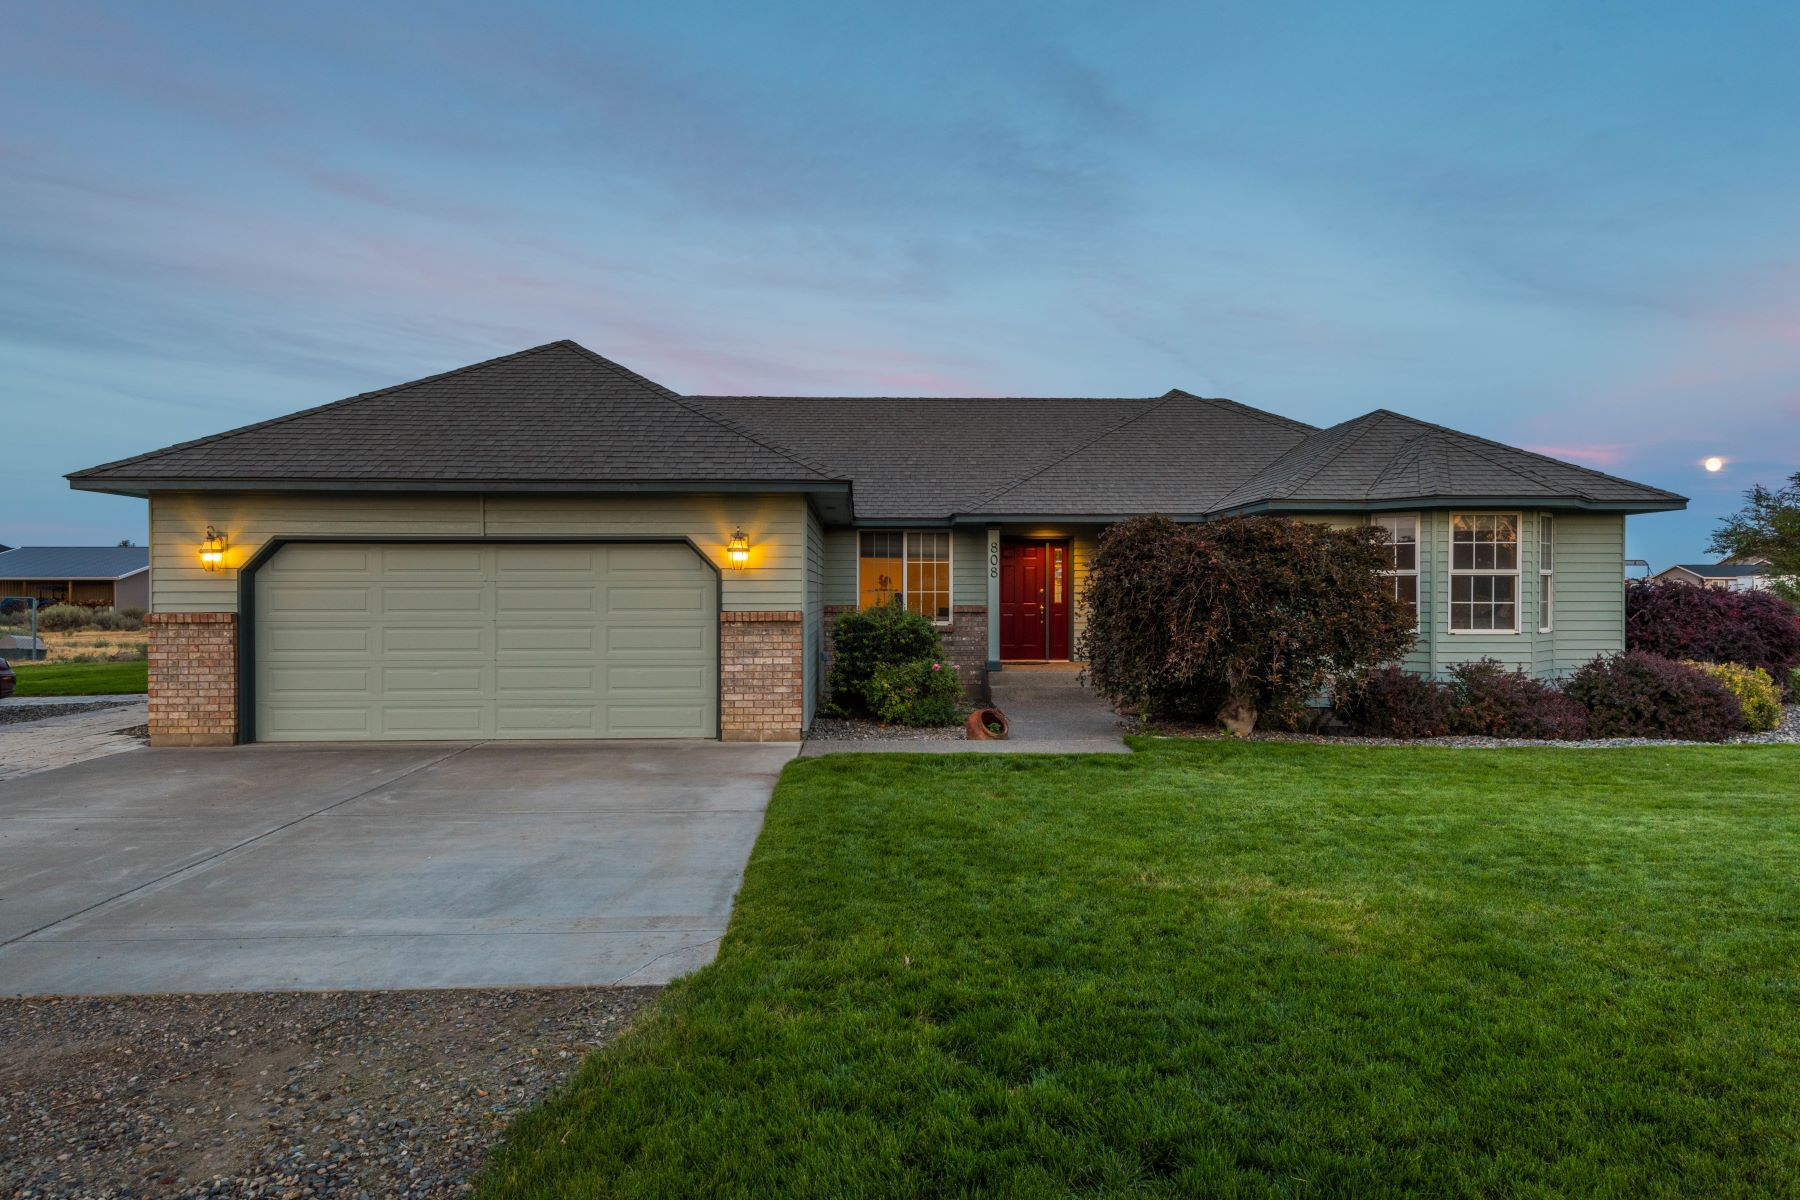 Single Family Homes for Sale at WONDERFUL HOME WITH ACREAGE CLOSE TO EVERYTHING 808 S 54TH AVE West Richland, Washington 99353 United States